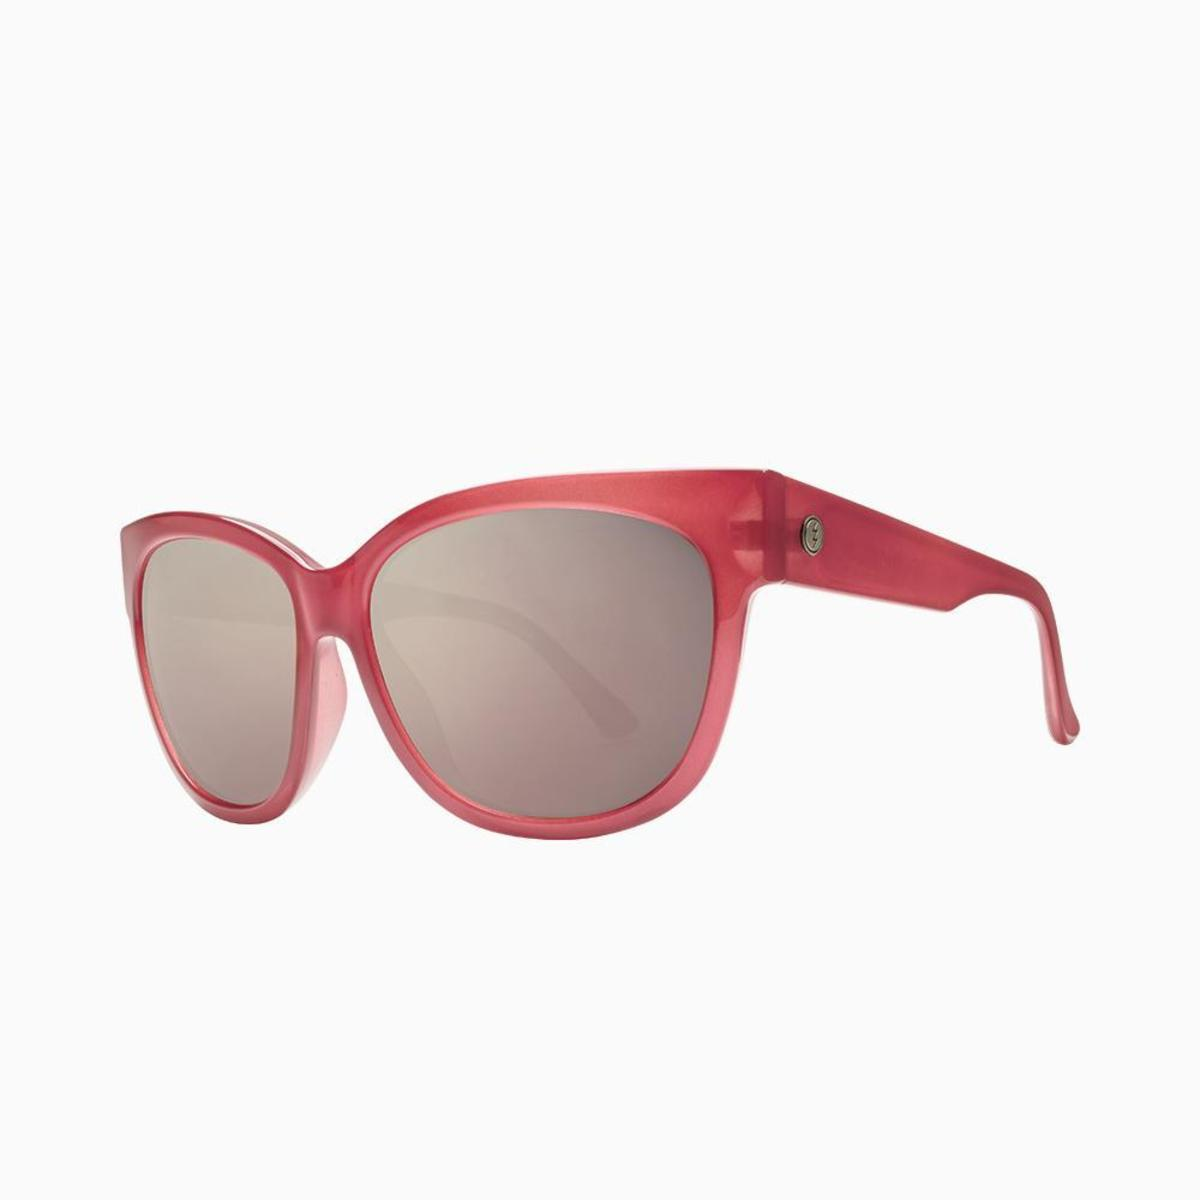 Electric Danger Cat Women's Sunglasses